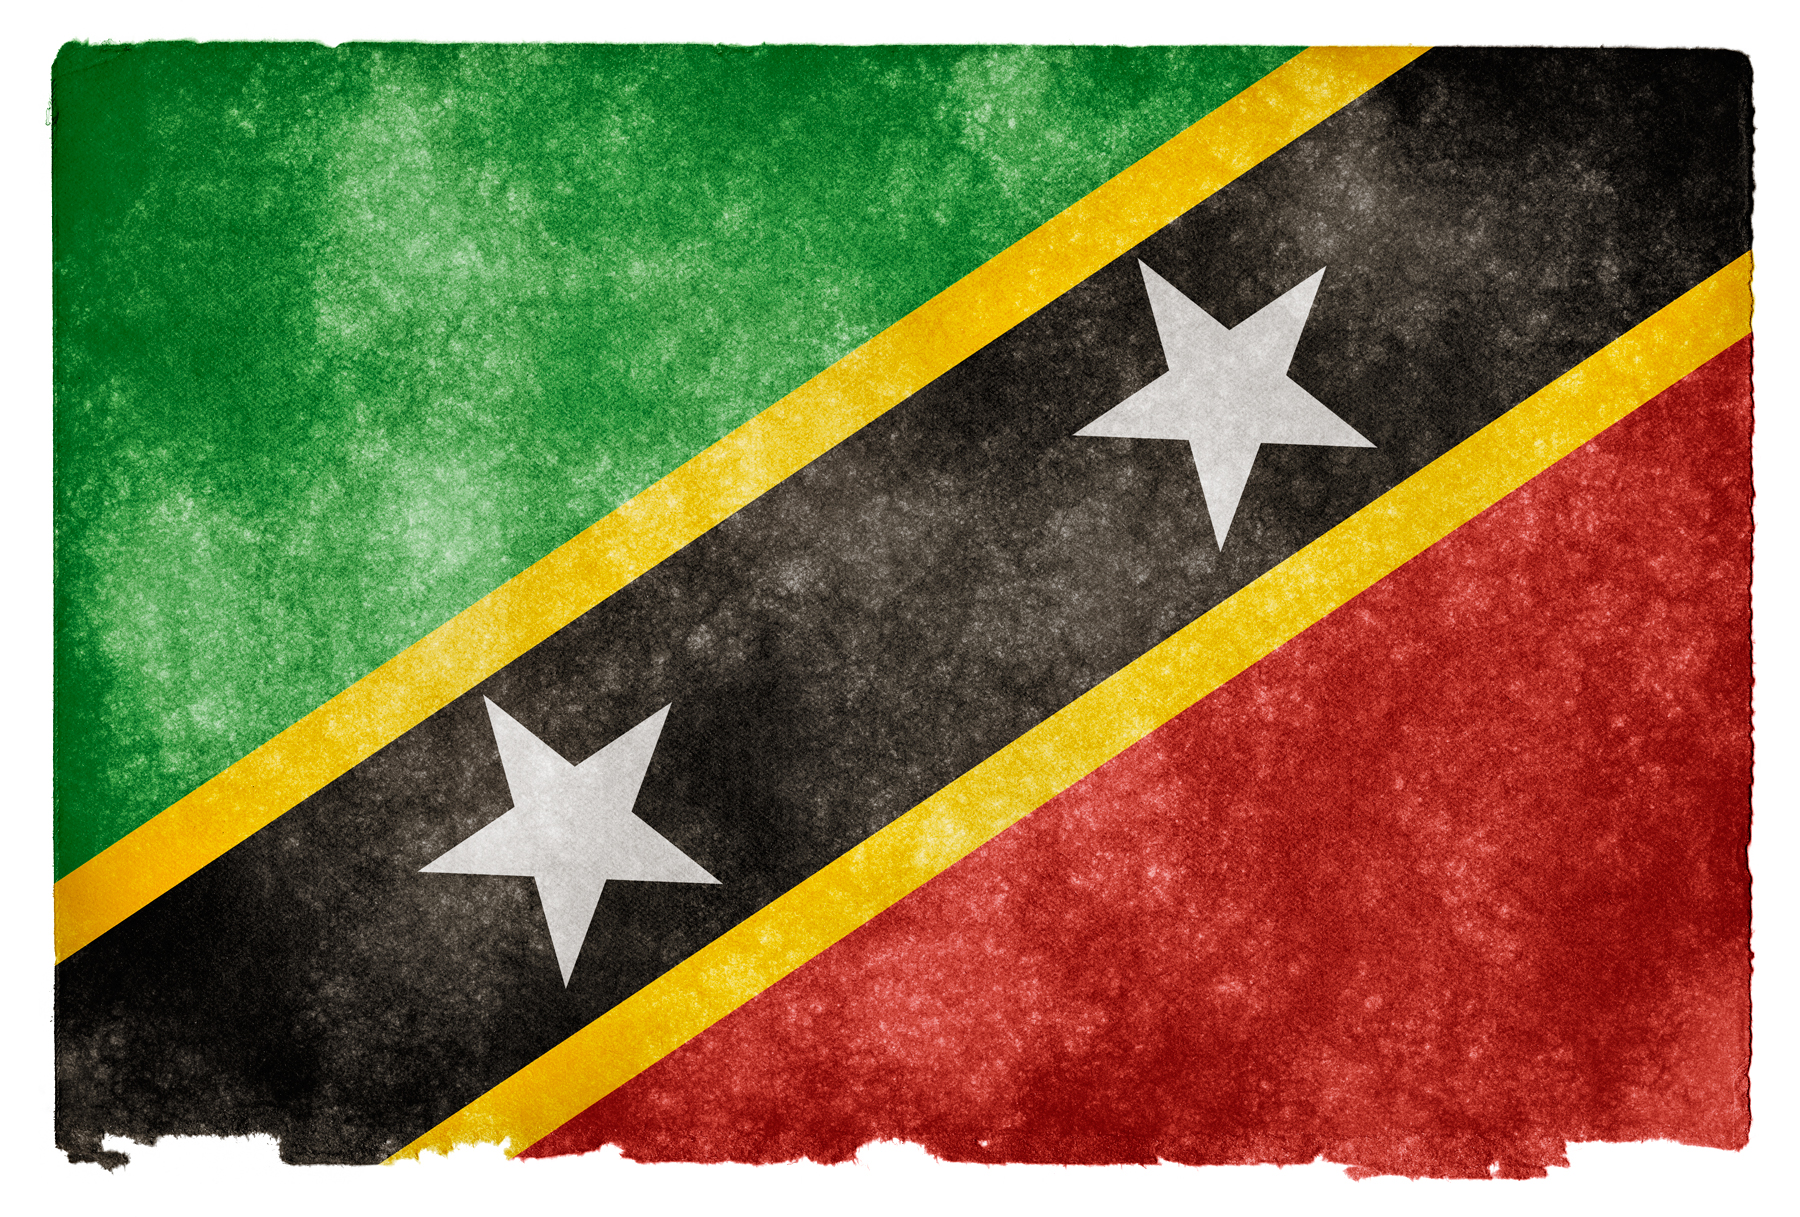 Saint Kitts and Nevis Grunge Flag HD Wallpaper Wide Screen 1800x1217